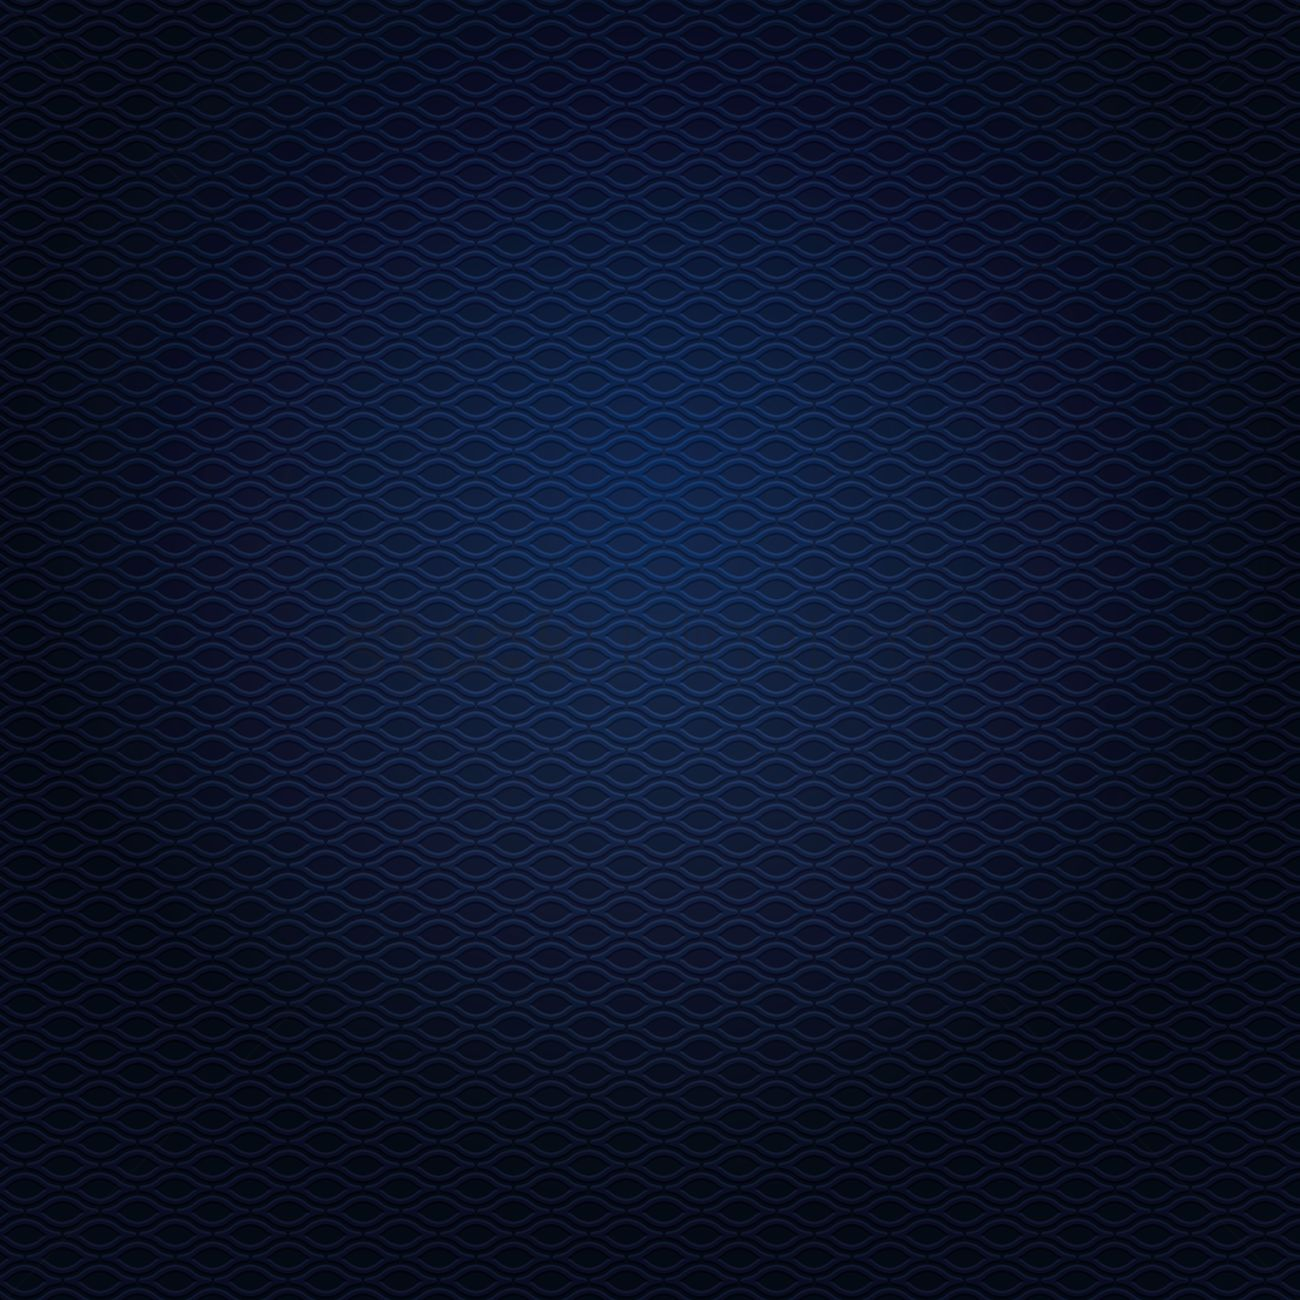 Free Animated Mobile Wallpapers Dark Blue Textured Background Vector Image 1845103